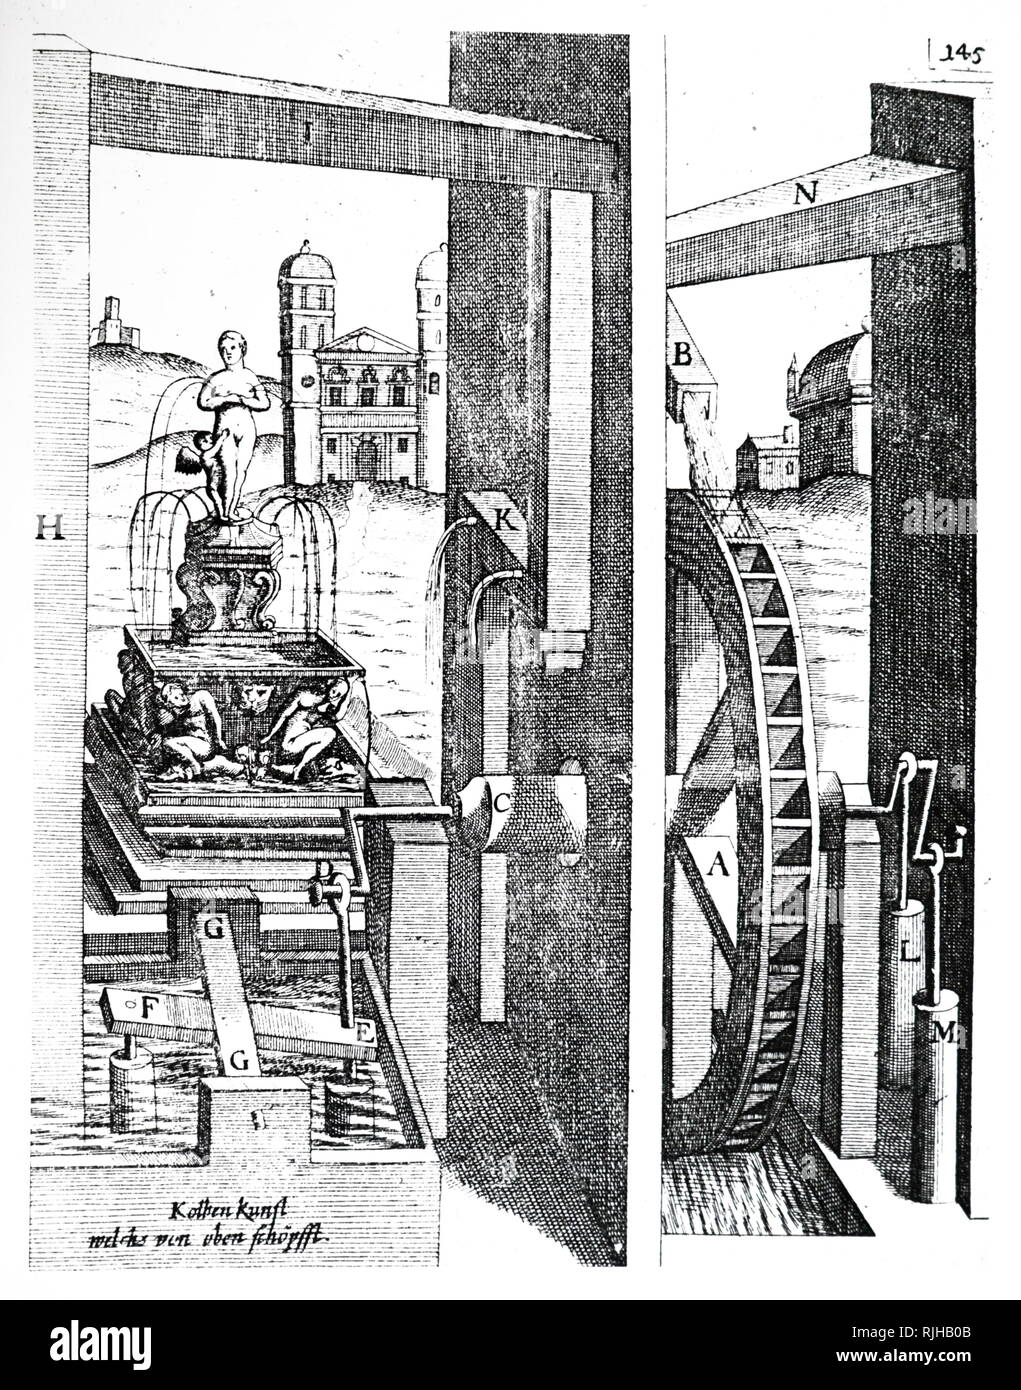 Drawing showing Pump driven by overshot water wheel, used to raise water into a reservoir, to operate the ornamental fountain in the background. From Georg Andreas Bockler; Theatrum Machinarum Novum, Nuremberg, 1673 - Stock Image